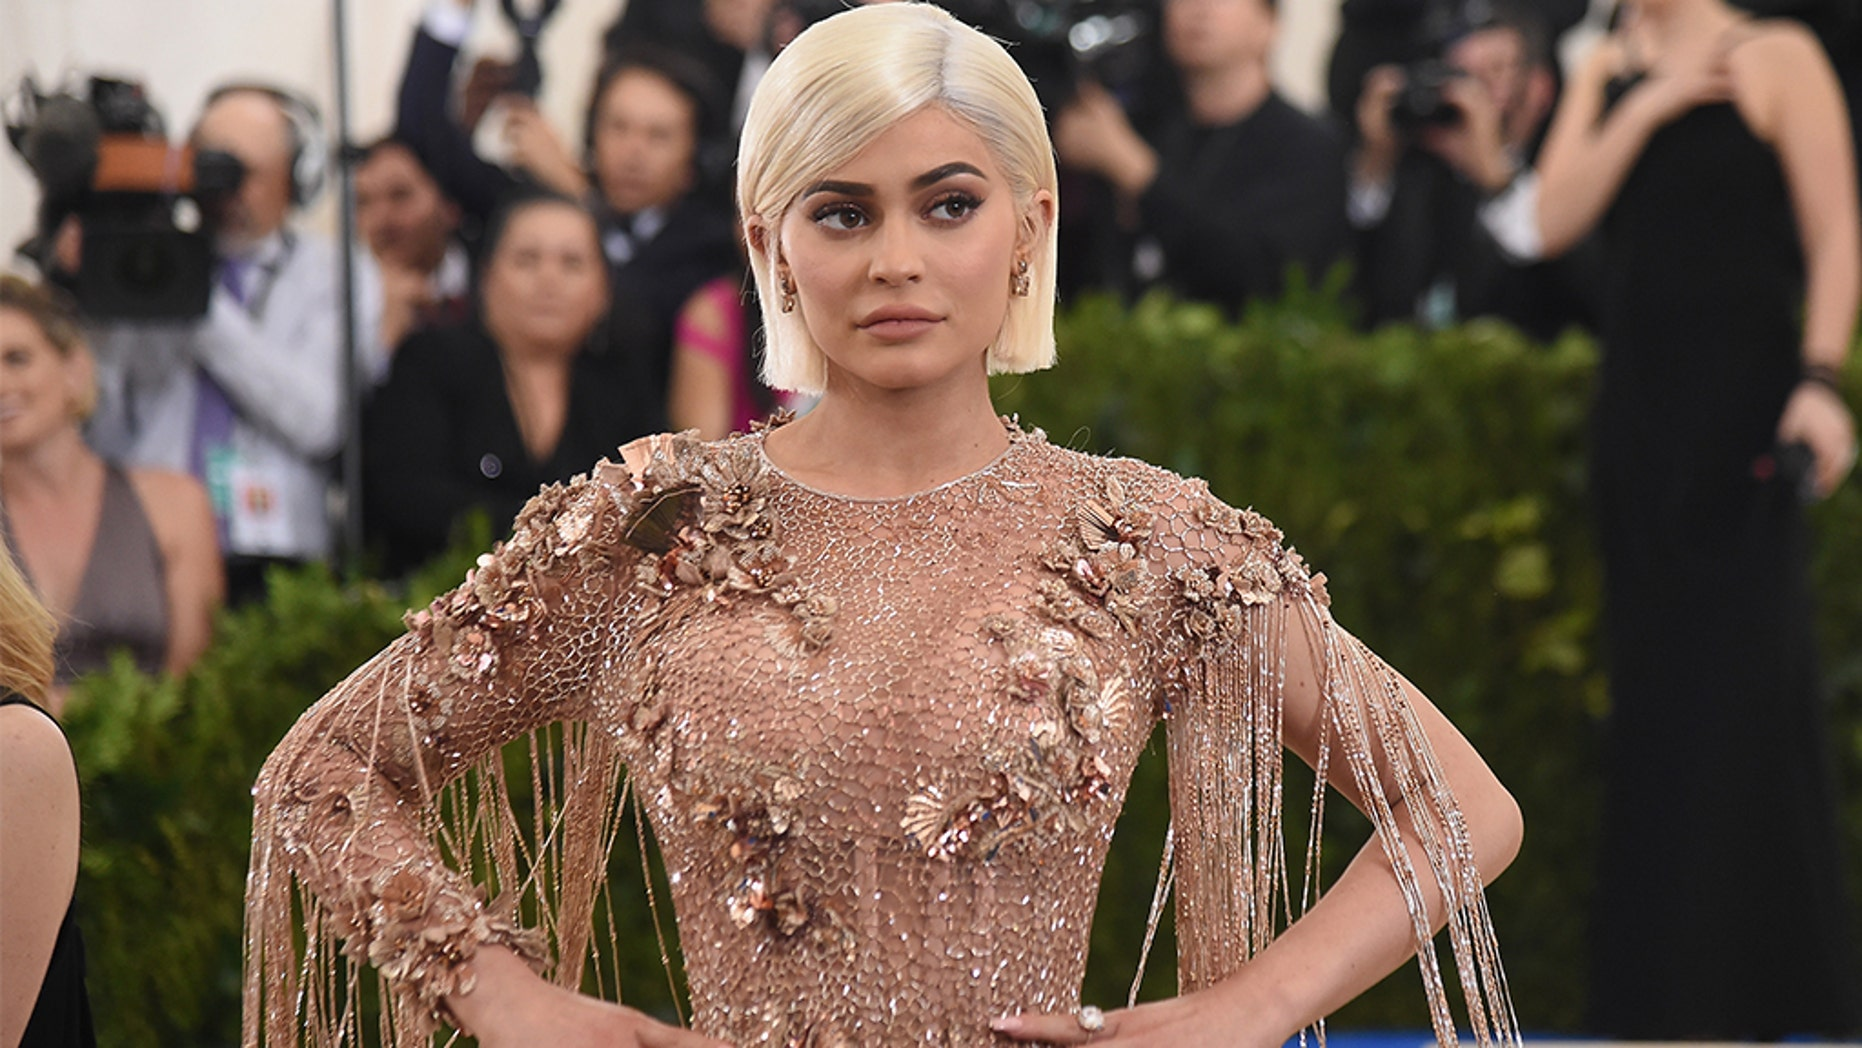 Kylie Jenner says daughter Stormi 'chose her own name'